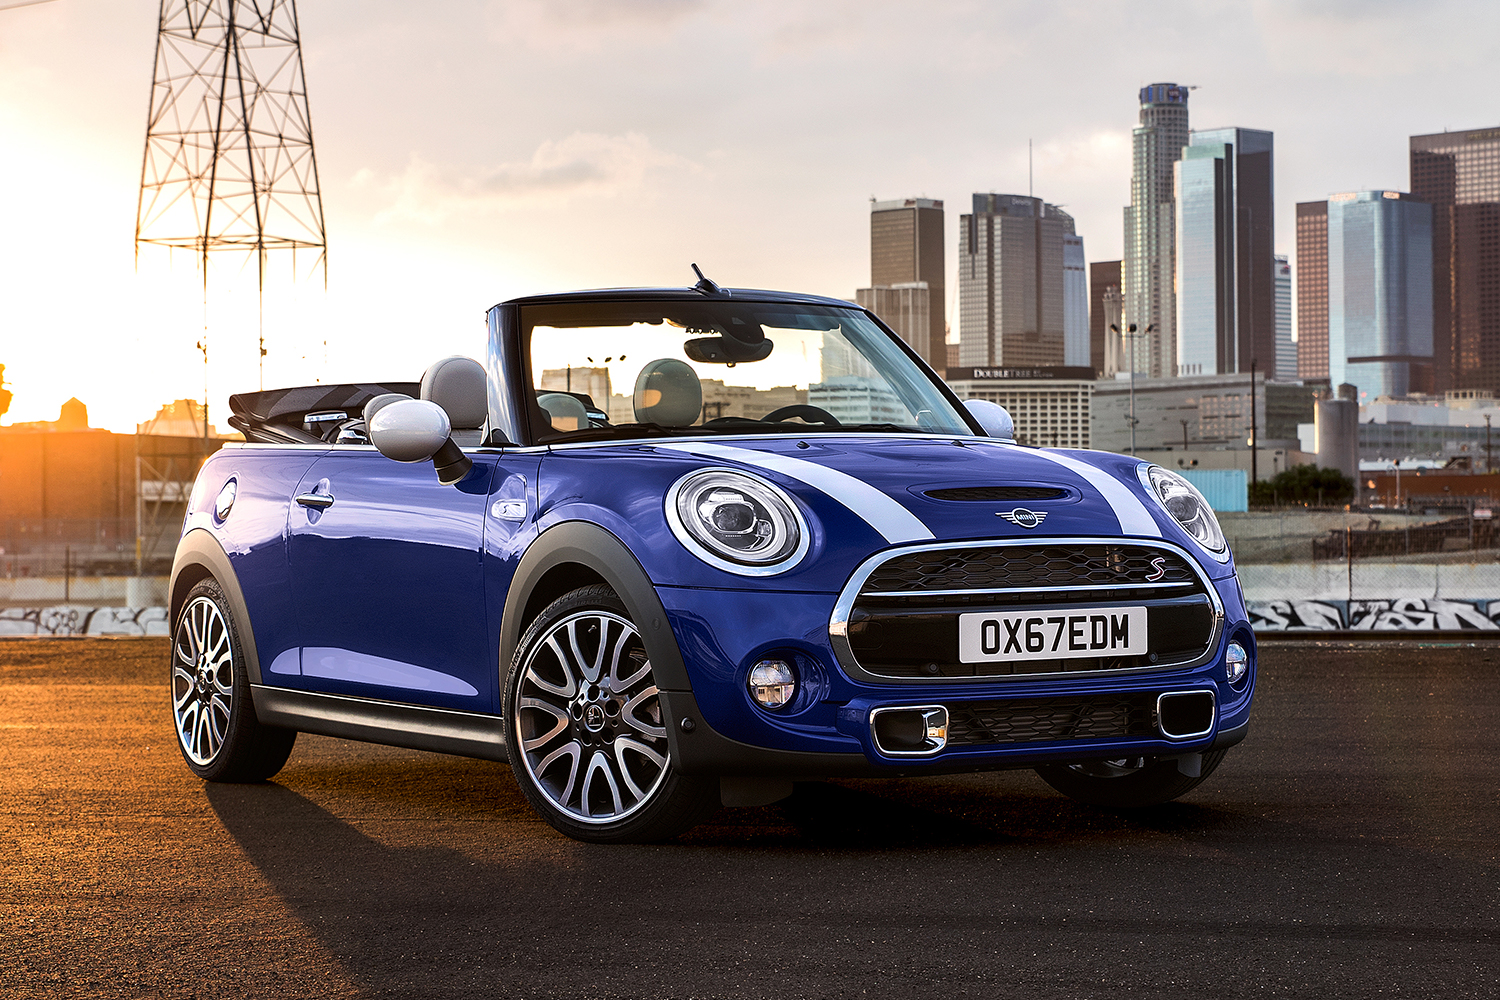 2020 Mini Convertible in blue and white